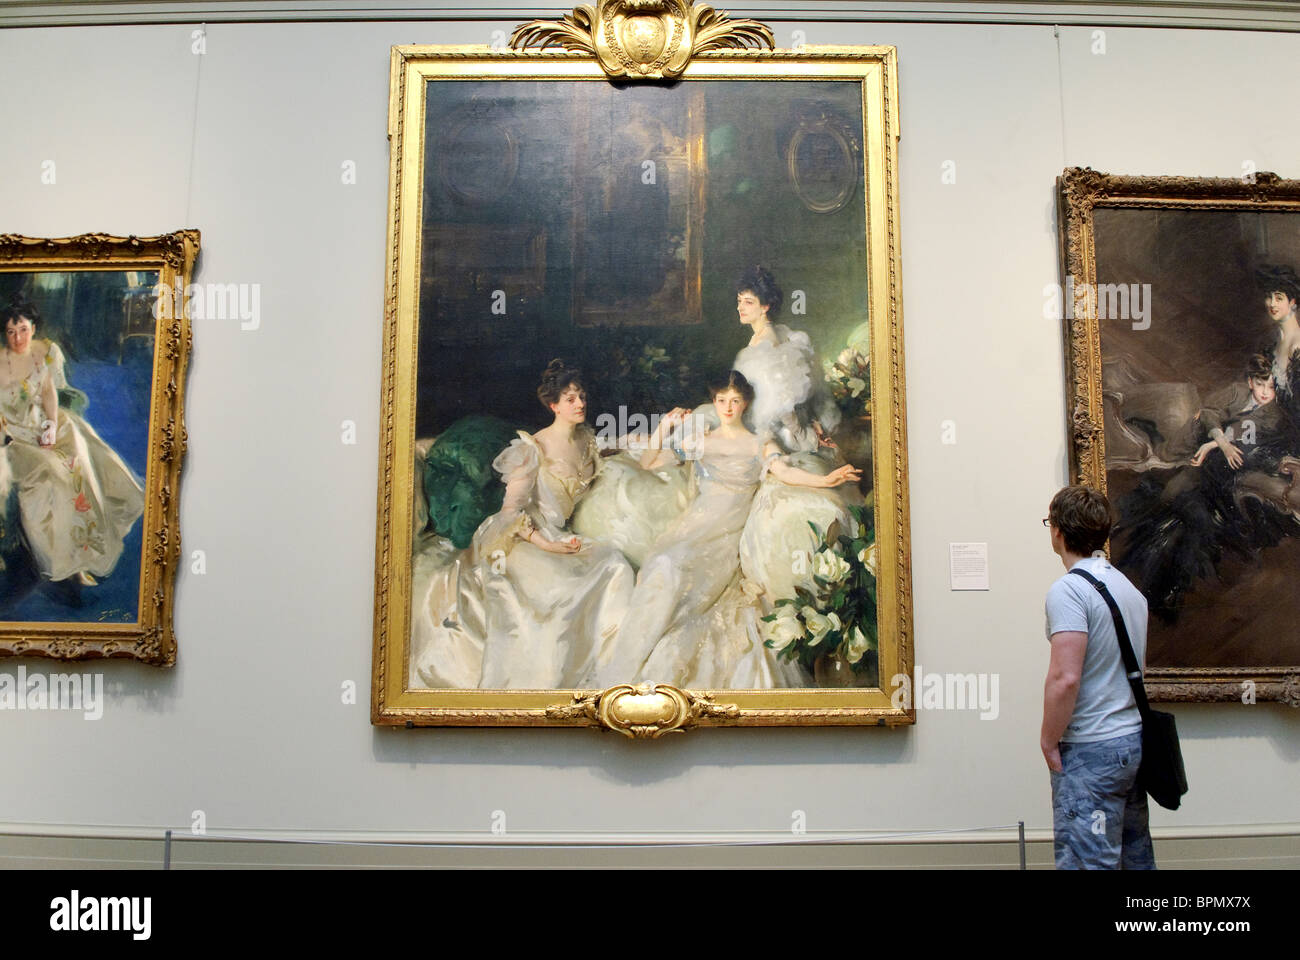 The Wyndham Sisters: Lady Elcho, Mrs. Adeane, and Mrs. Tennant, 1899, by John Singer Sargent - Stock Image